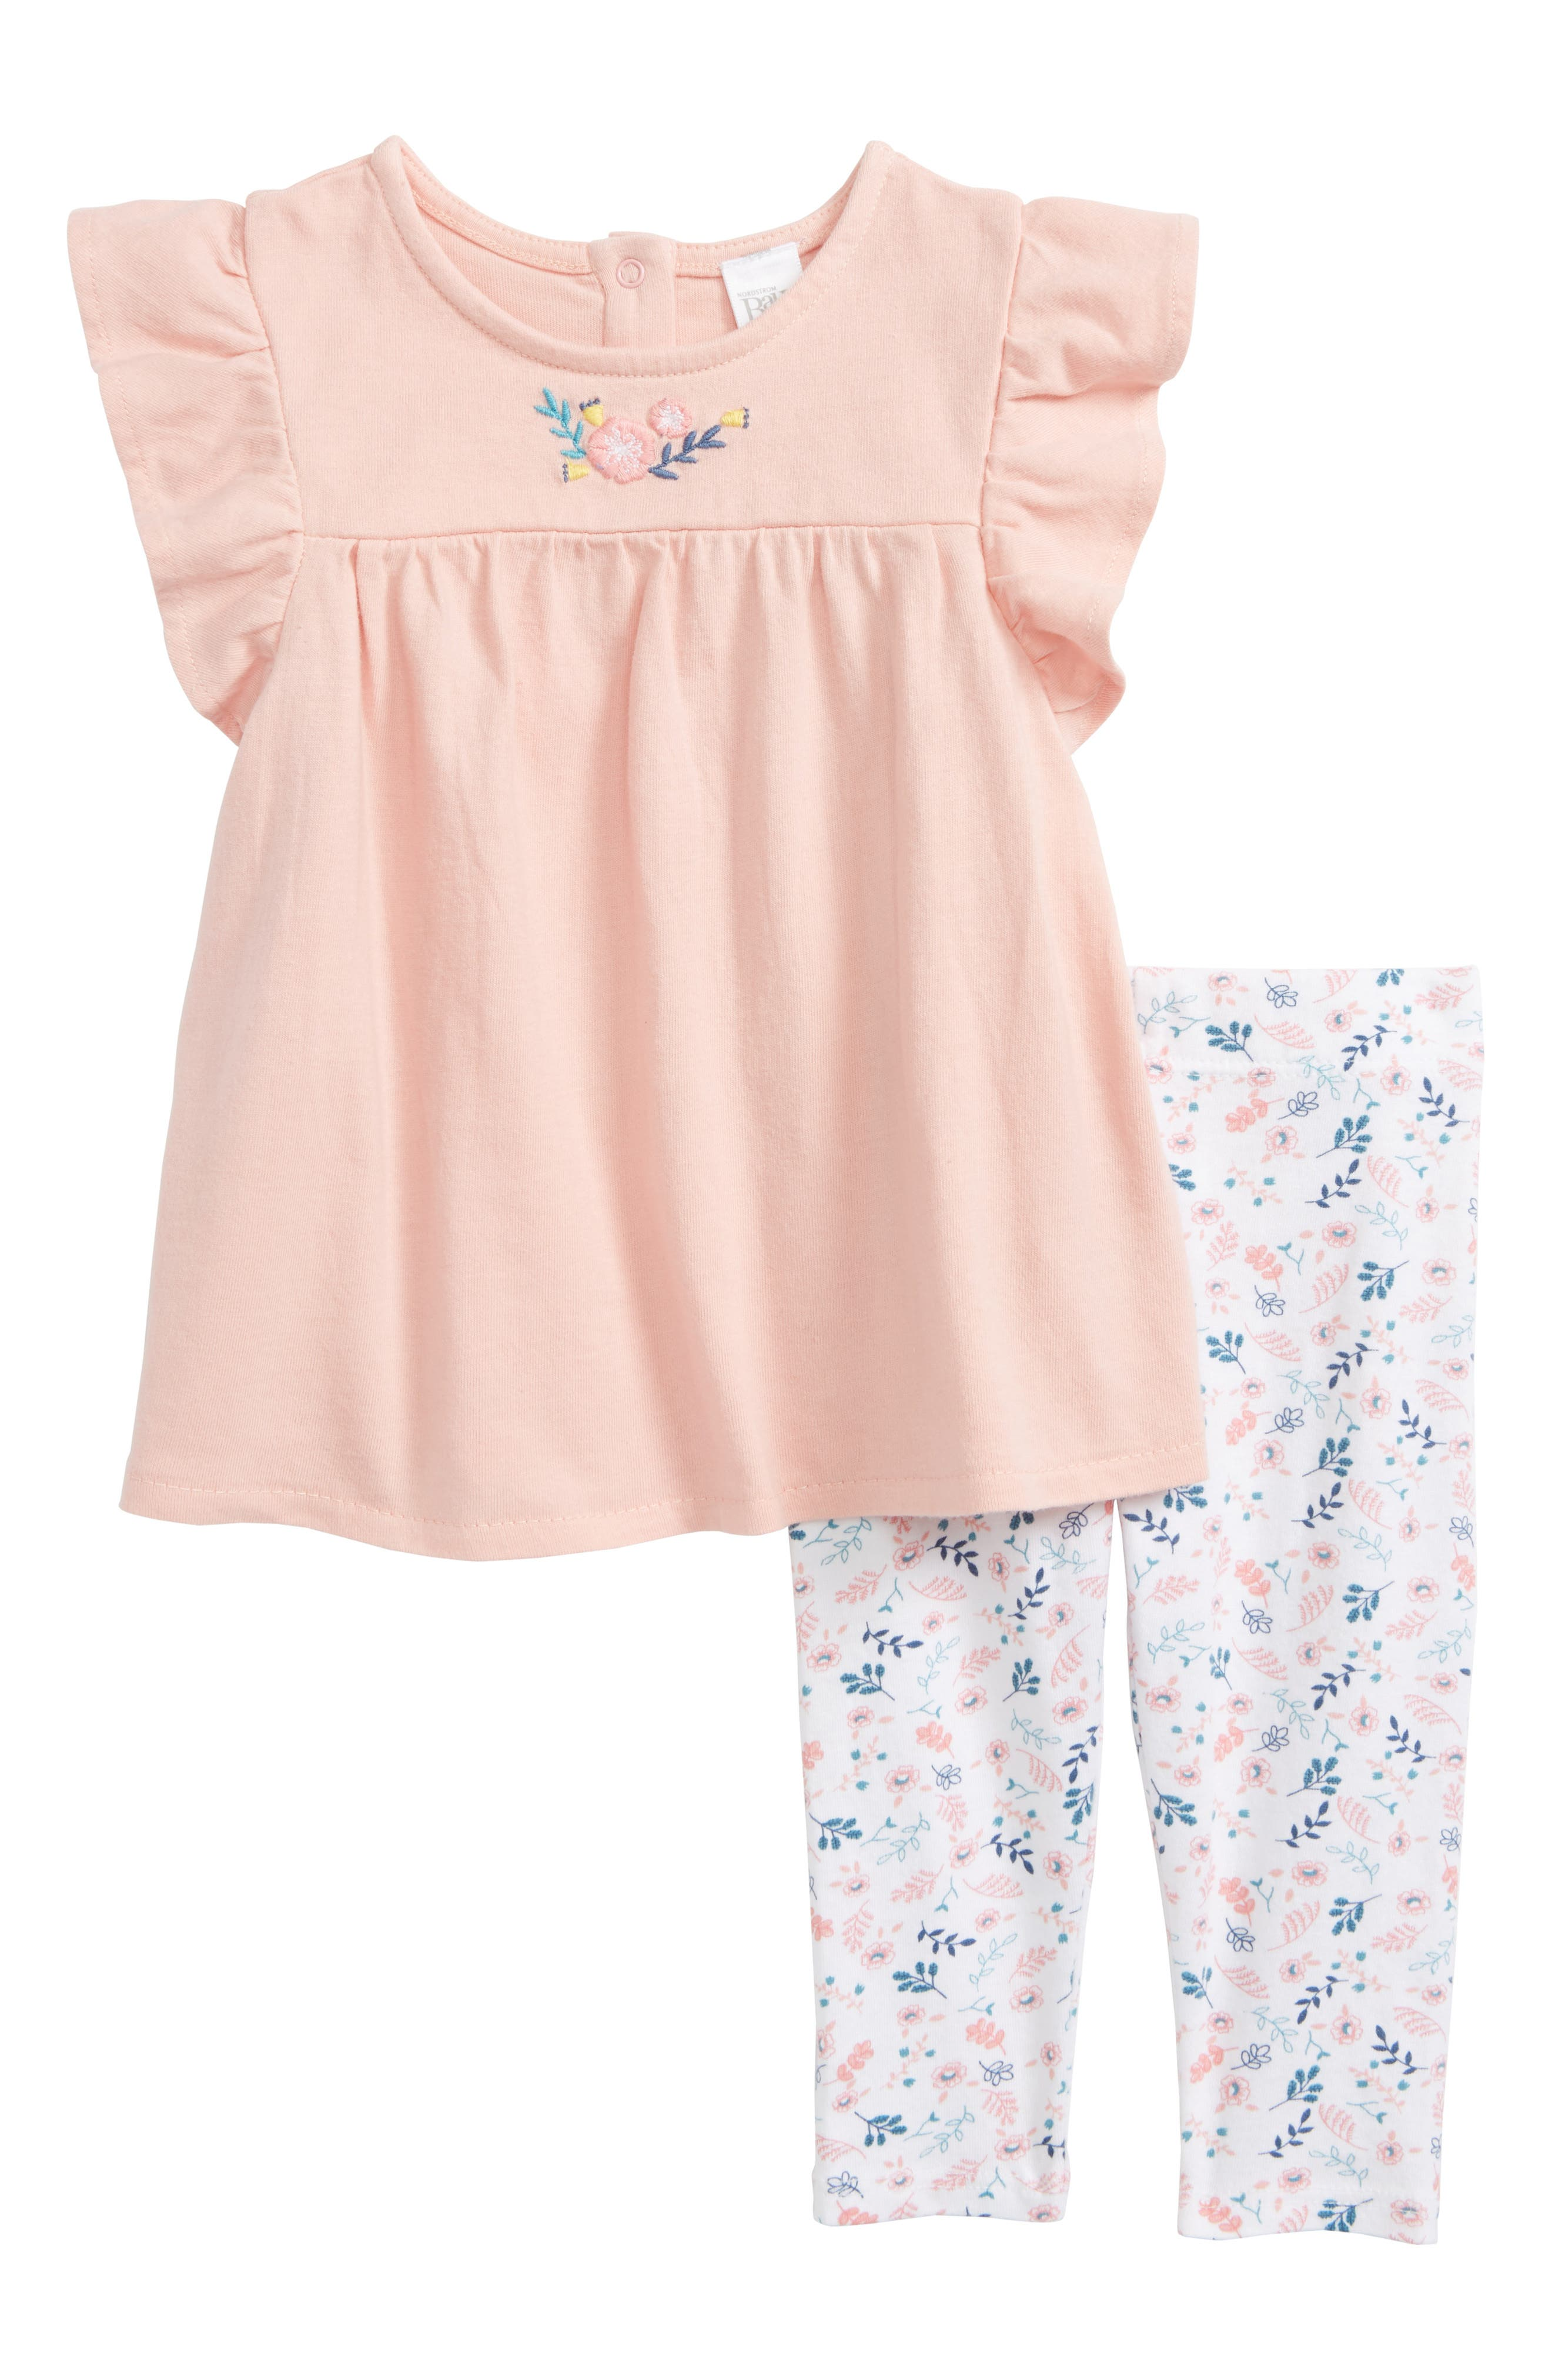 Nordstrom Baby Embroidered Tunic & Leggings Set (Baby Girls)